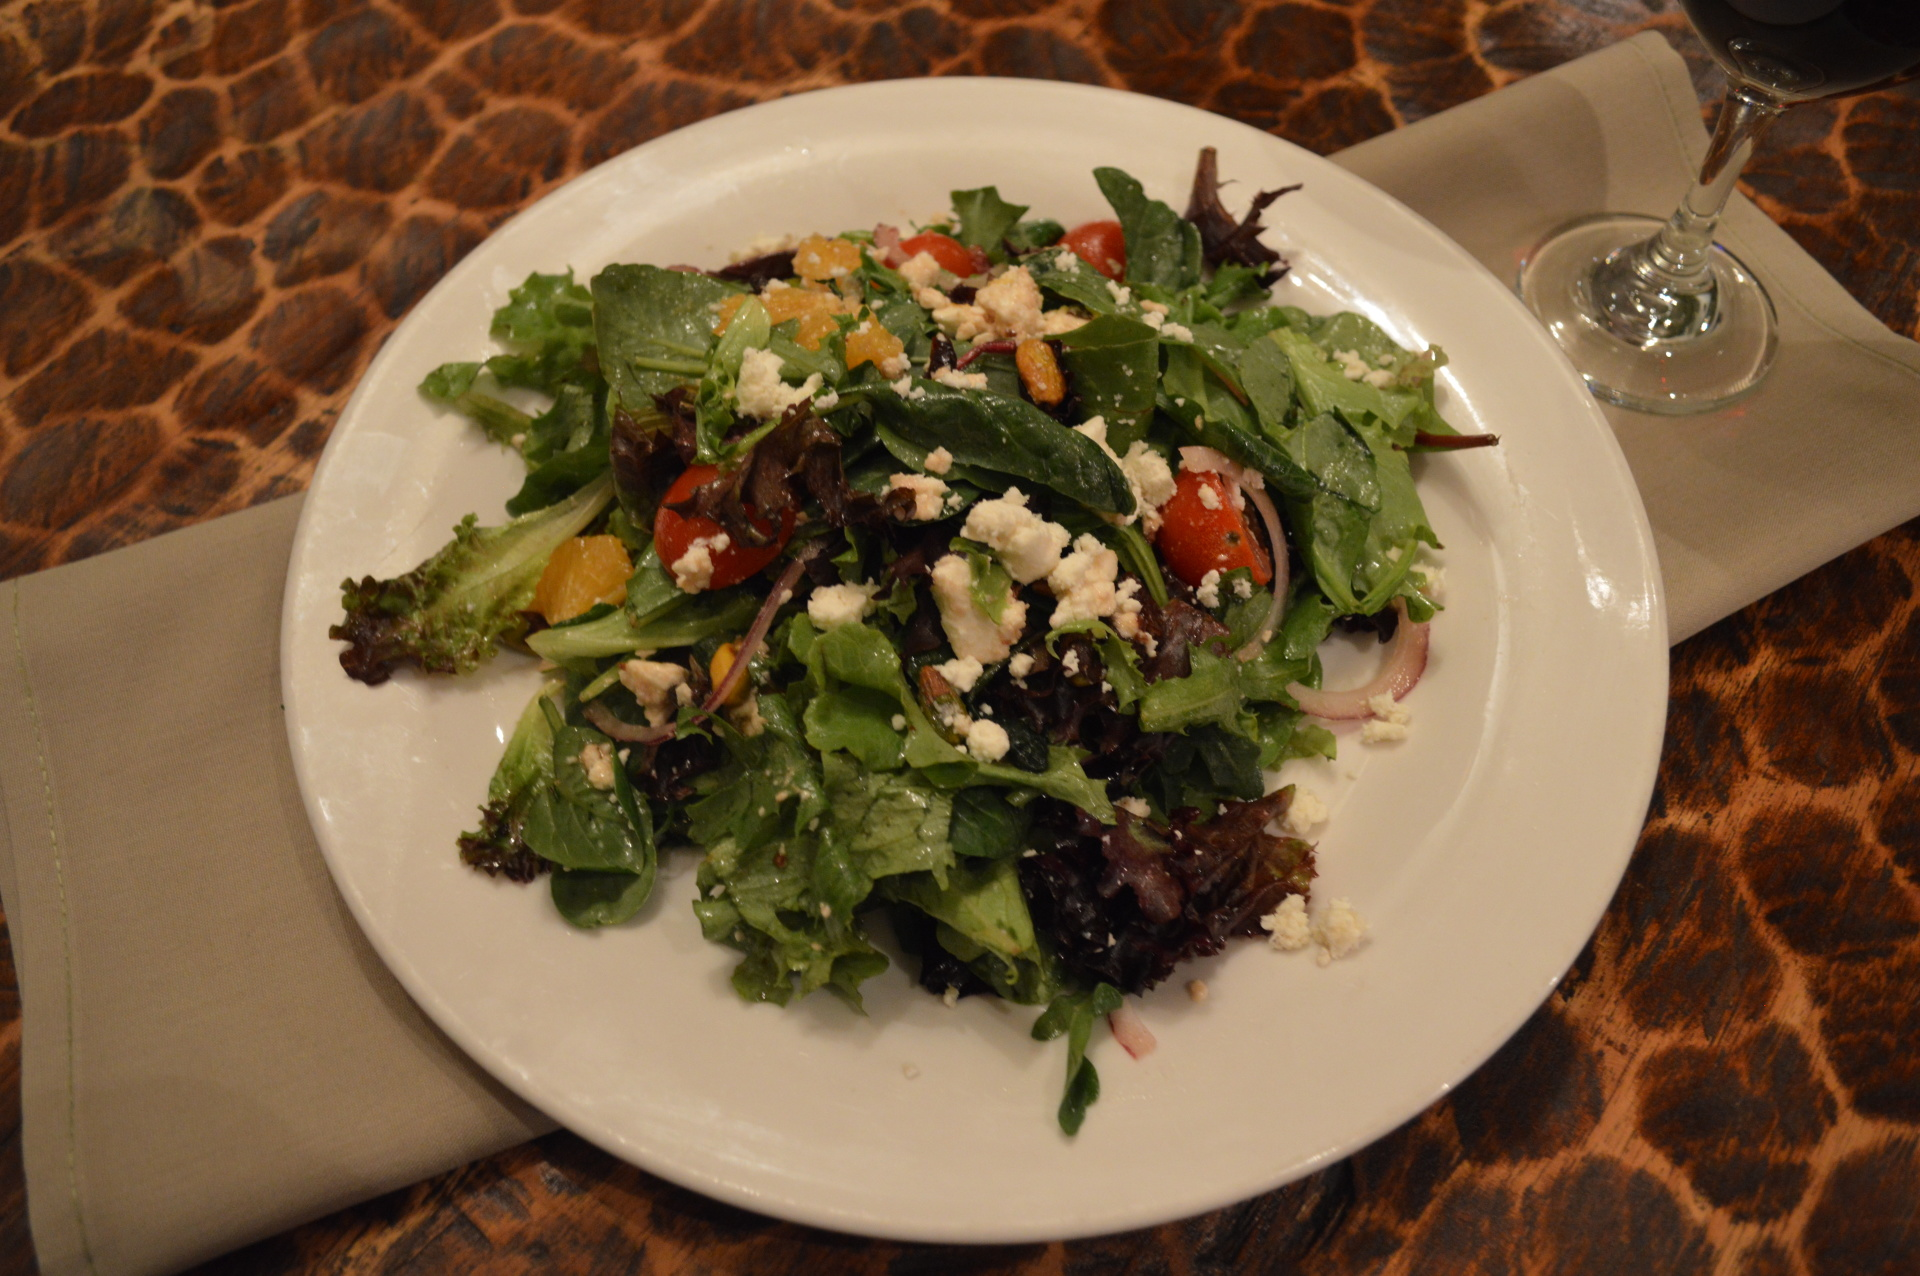 Mixed Greens with Grape Tomato, Orange Segments, Shaved Onions, Raisins, Pistachios and Feta Tossed with Dill Balsamic -Cilantro Vinaigrette  (GF)